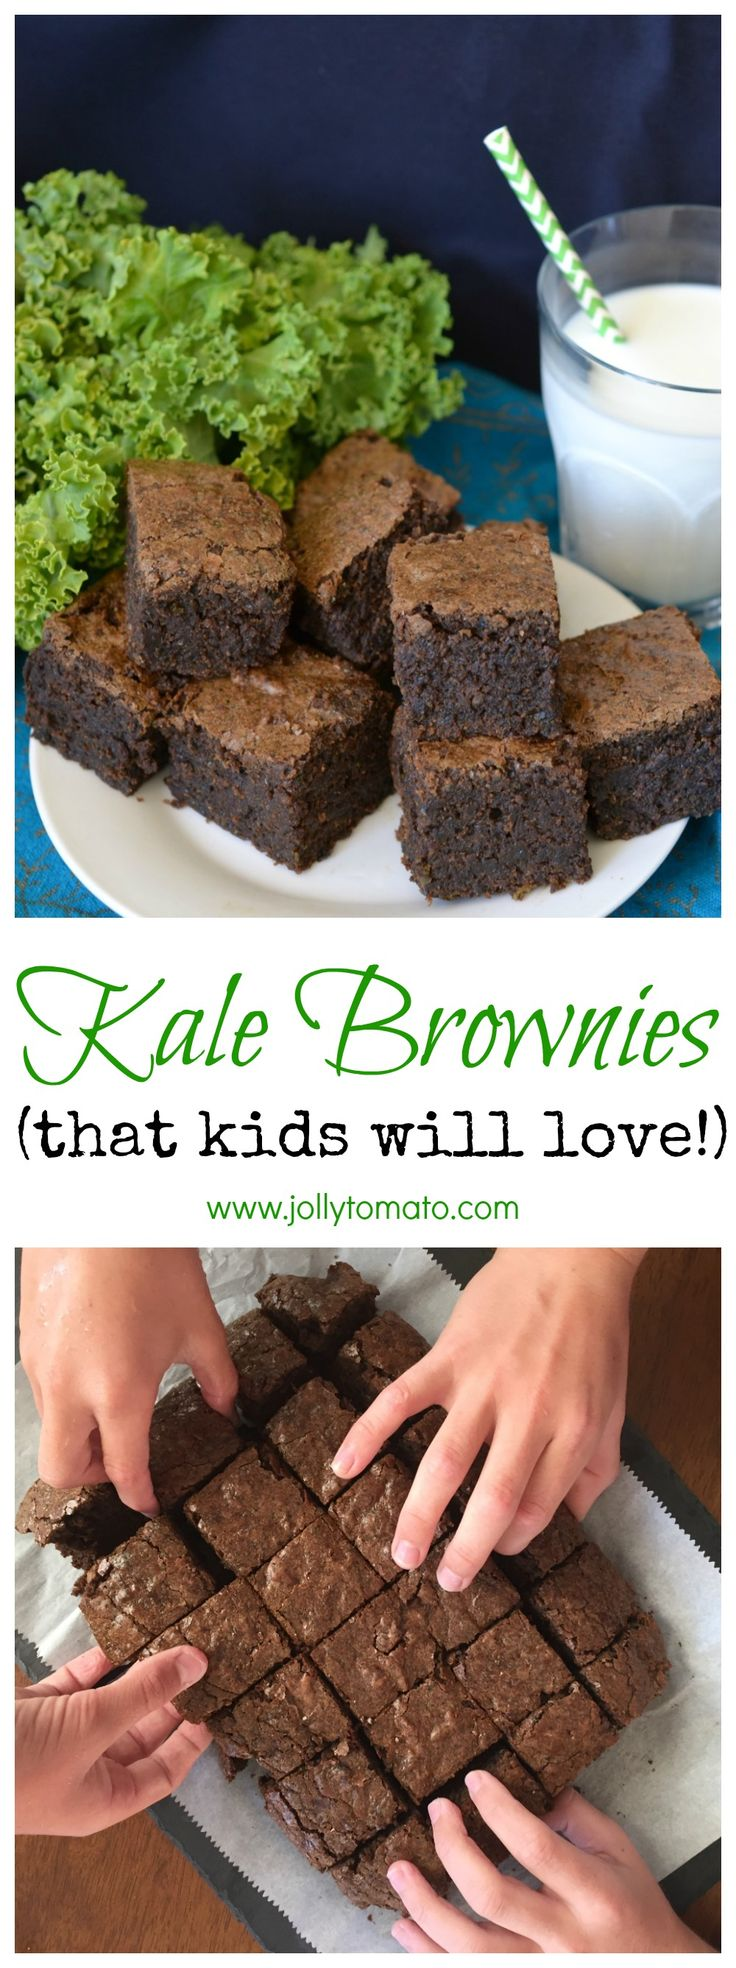 Kale brownies (really!) that kids will love.